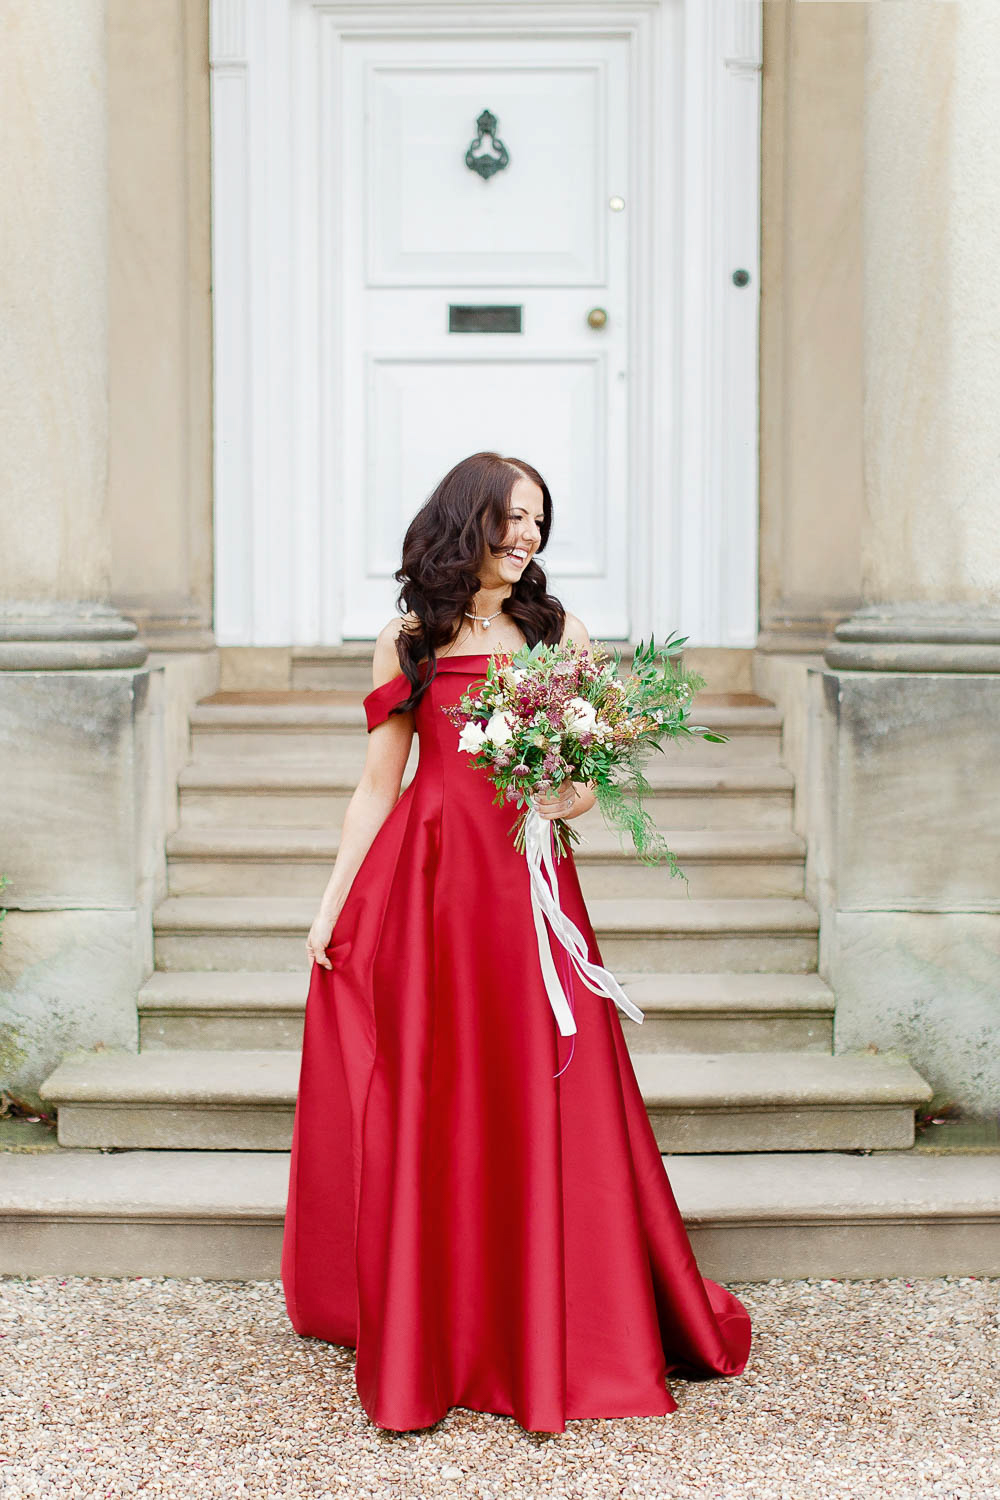 The bride chose a fantastic red off the shoulder A line wedding dress that made a statement